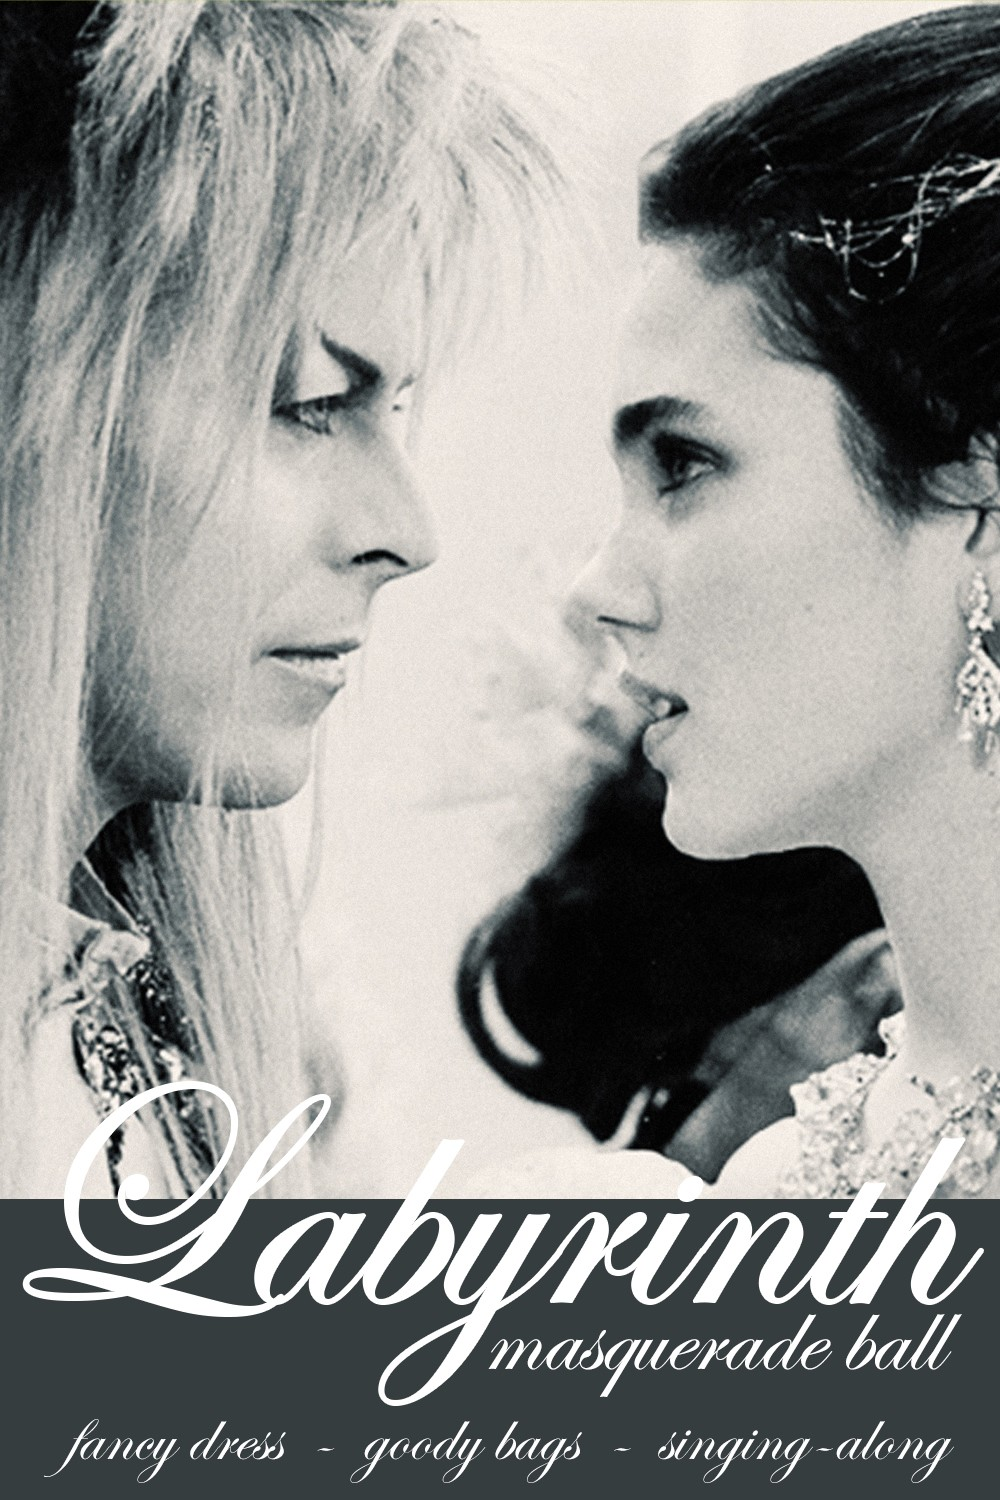 LABYRINTH - MASQUERADE BALL